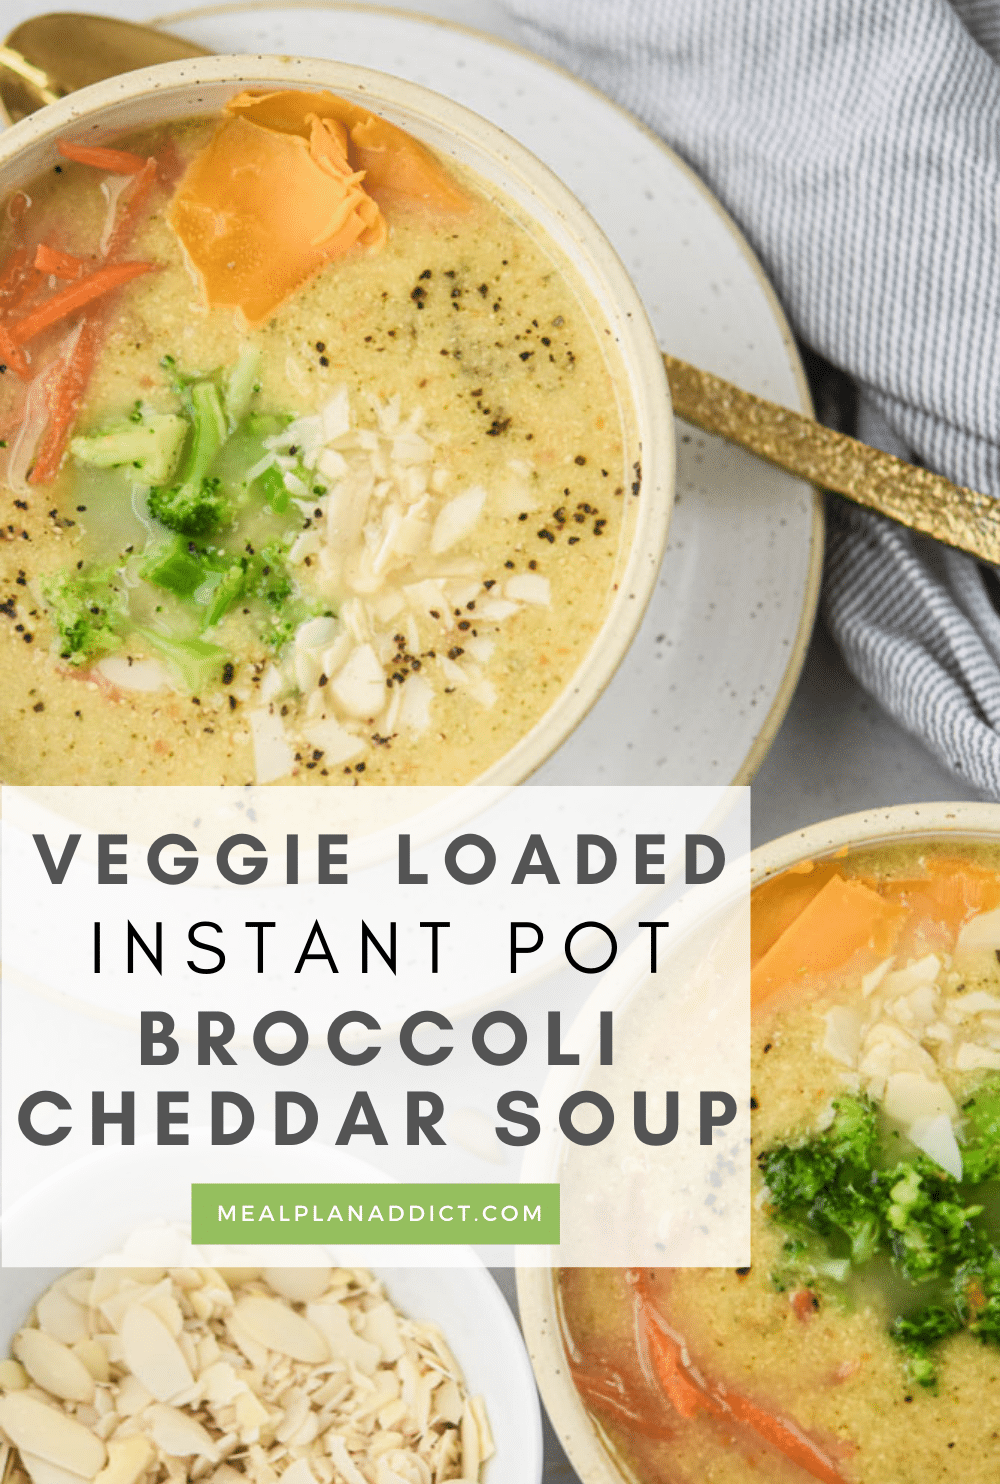 Broccoli Cheddar soup pin for Pinterest